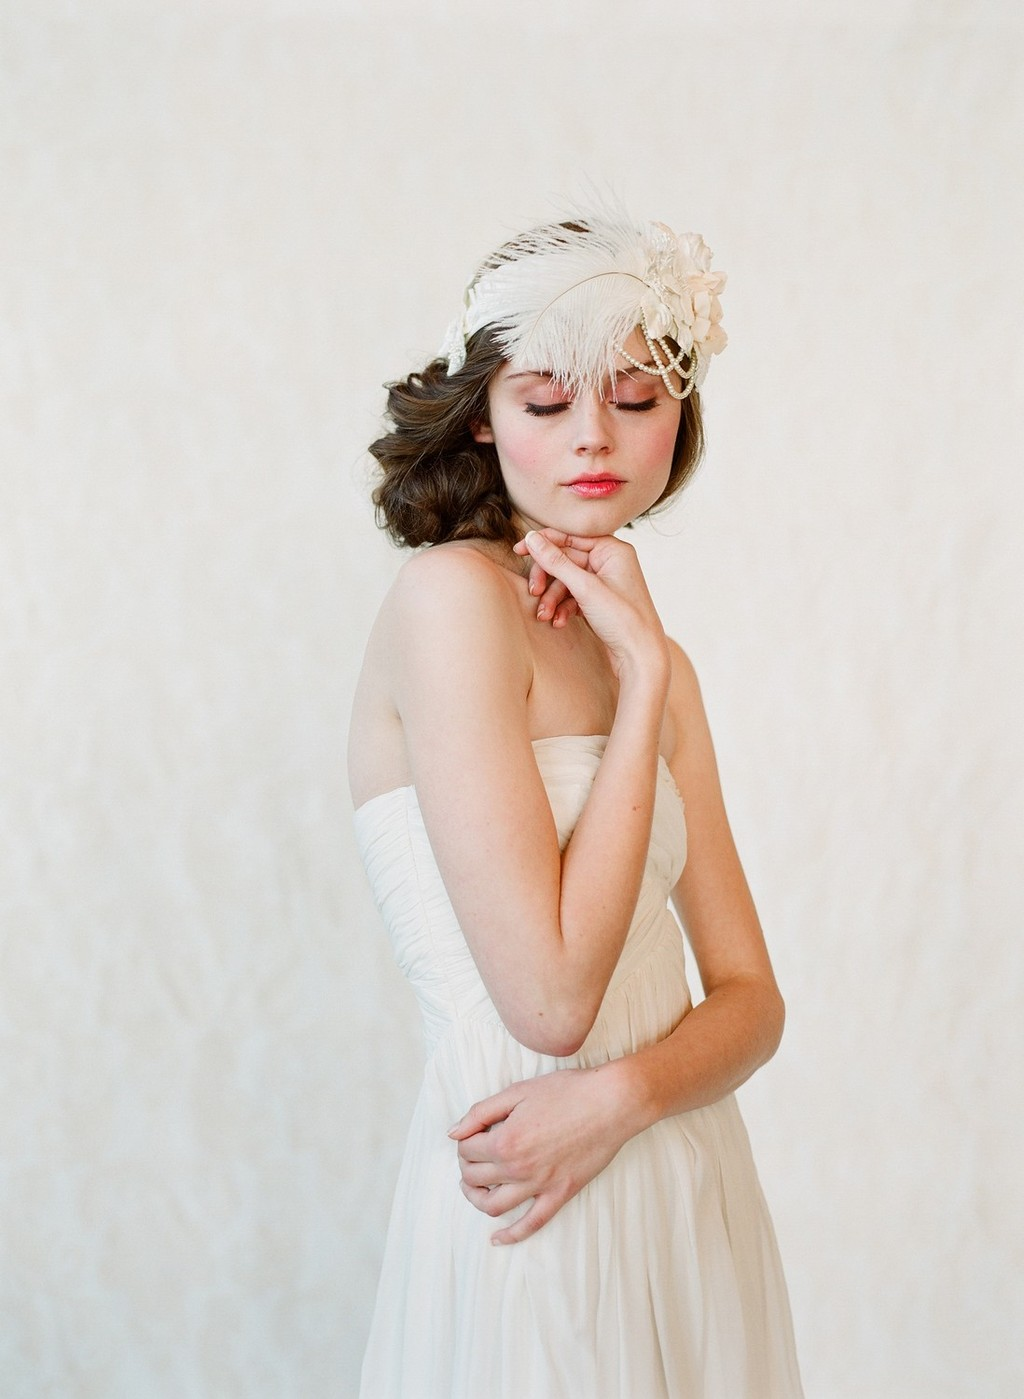 Flapper-inspired-wedding-headpiece-with-feathers-and-pearls.full